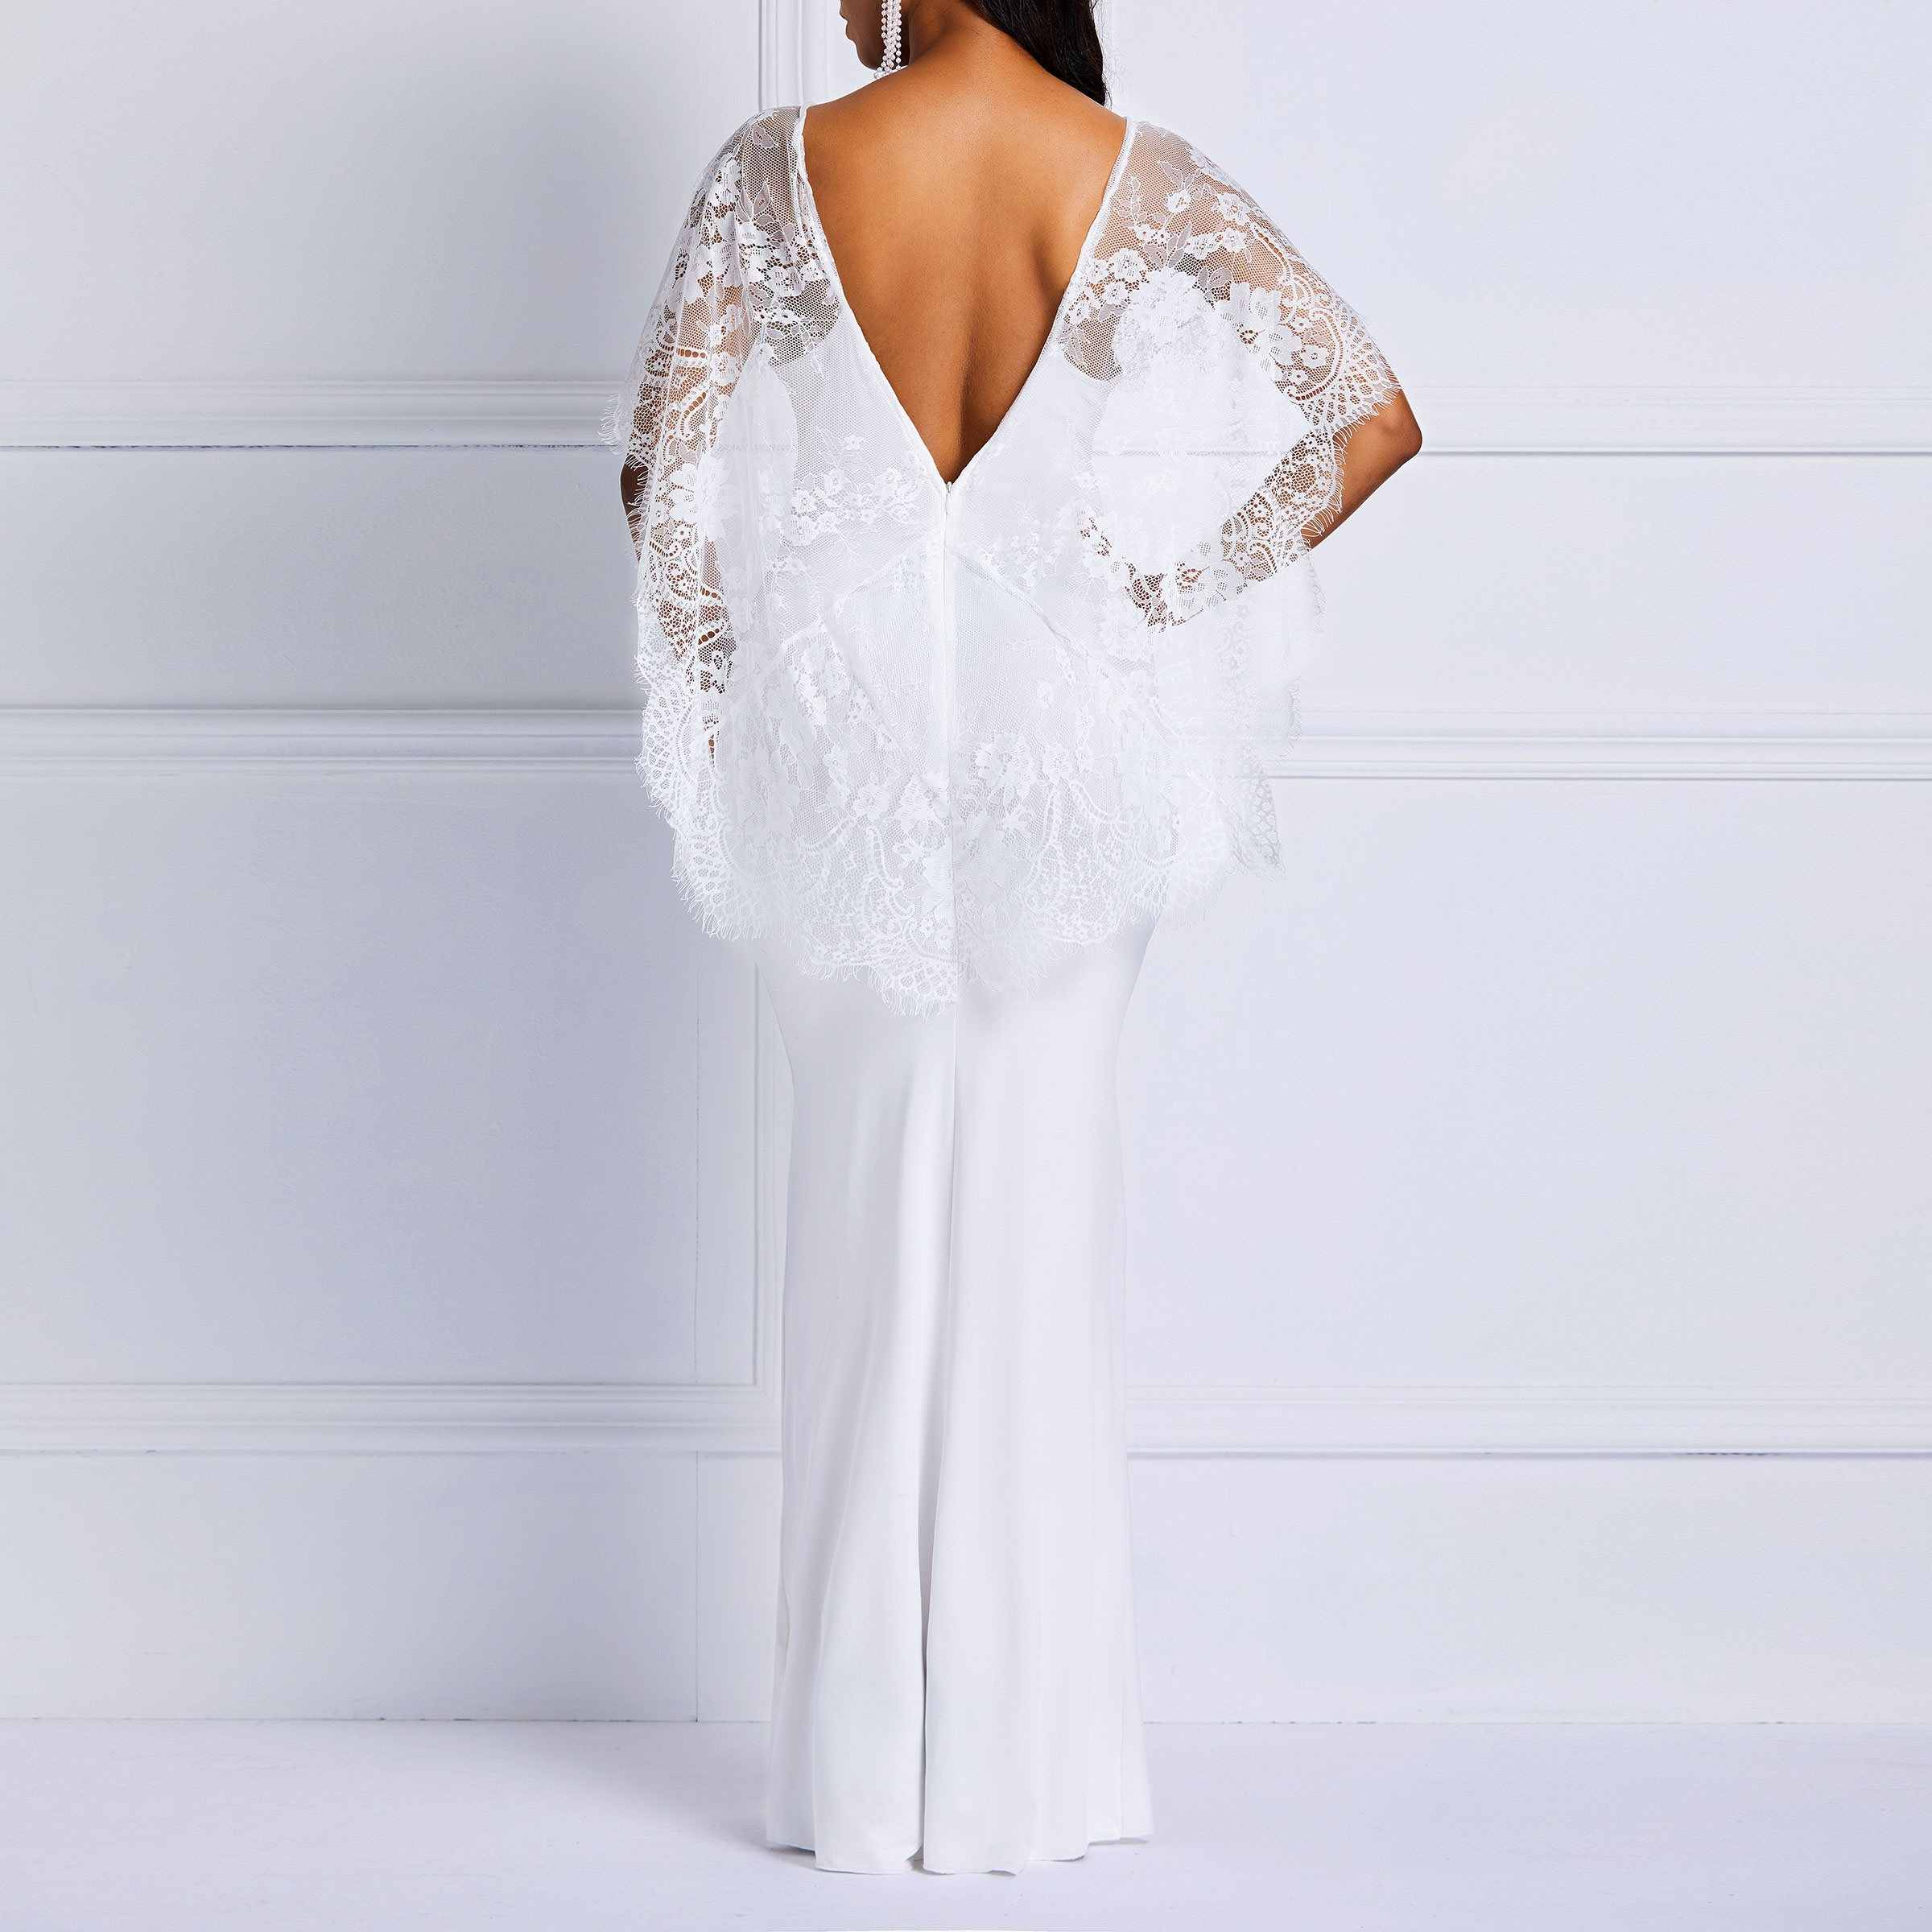 b87850edc074 ... Clocolor Long Summer White Lace Dress Women Backless Bodycon Sexy  Simple Elegant Plain Prom Evening Party